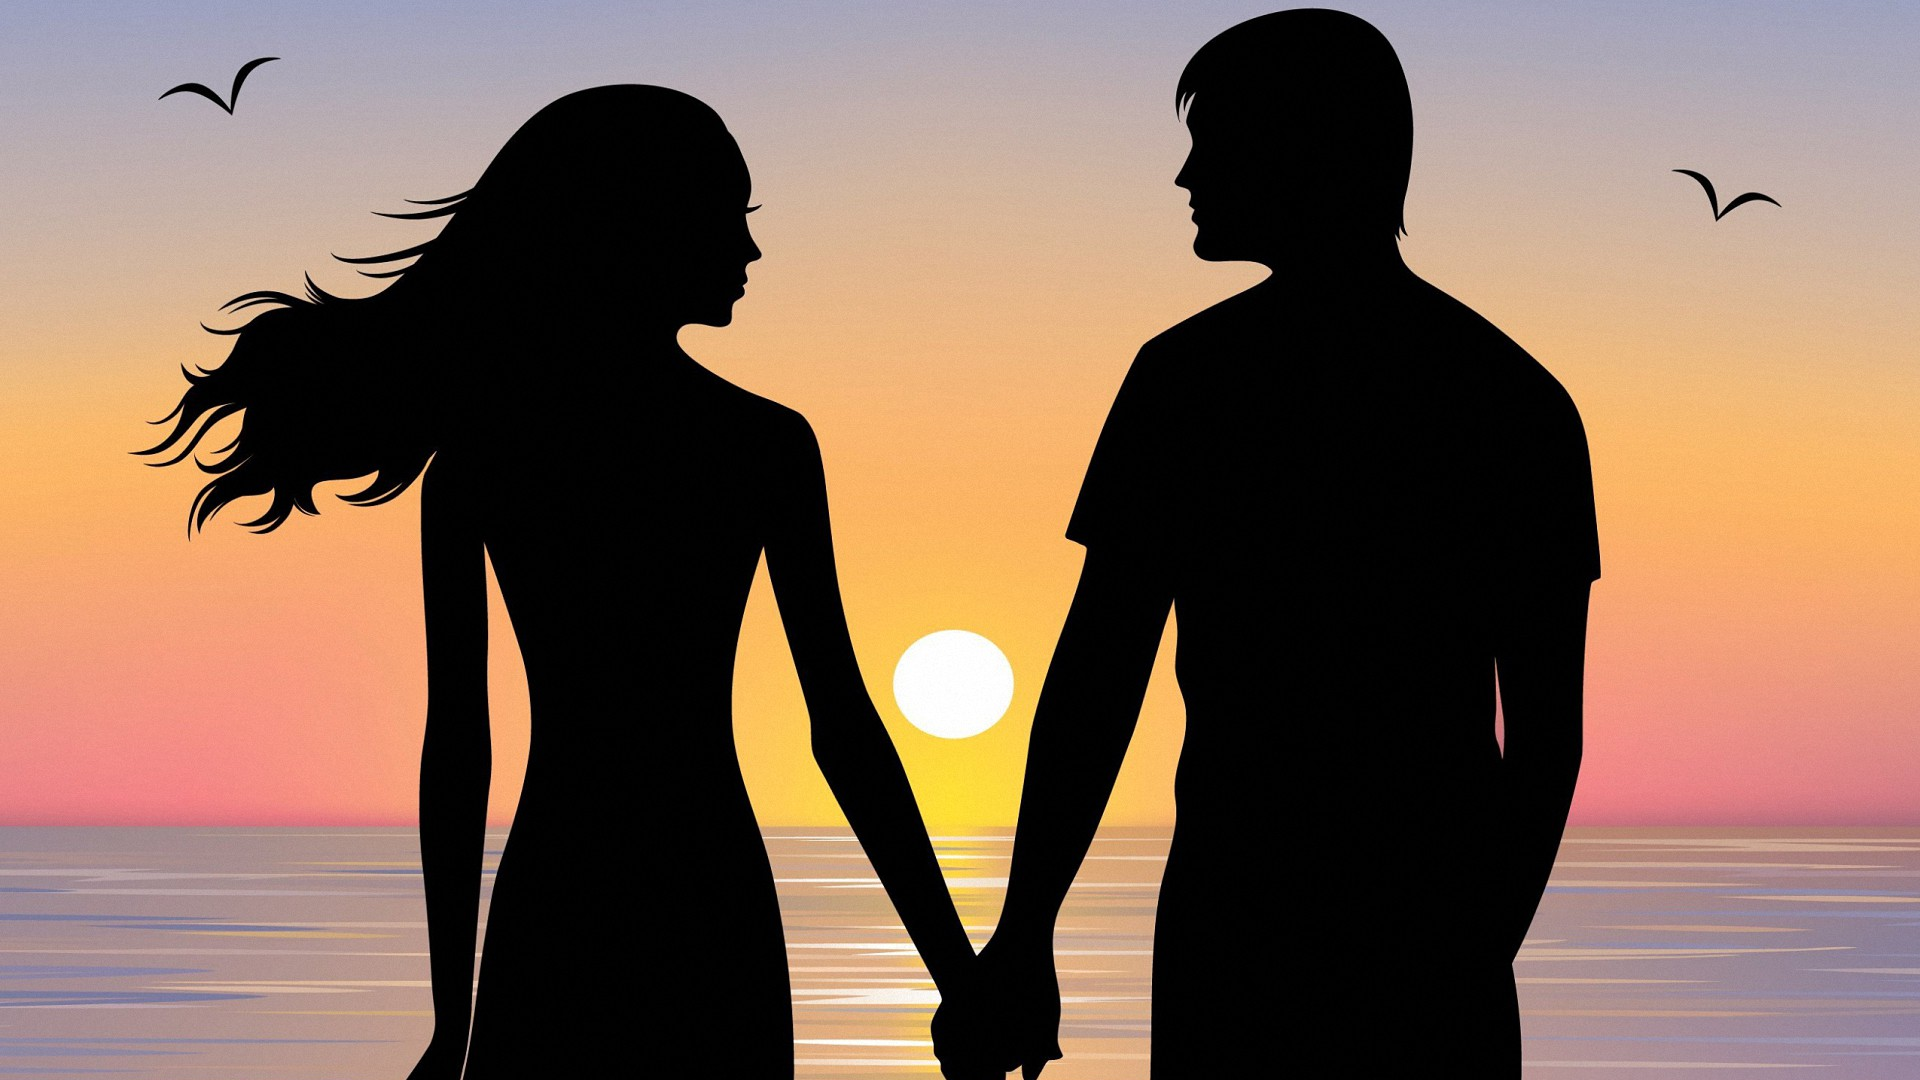 Love Couple Hd Wallpapers 1080p Free Download 42 Cerc Silhouette Girl And Boy 438456 Hd Wallpaper Backgrounds Download